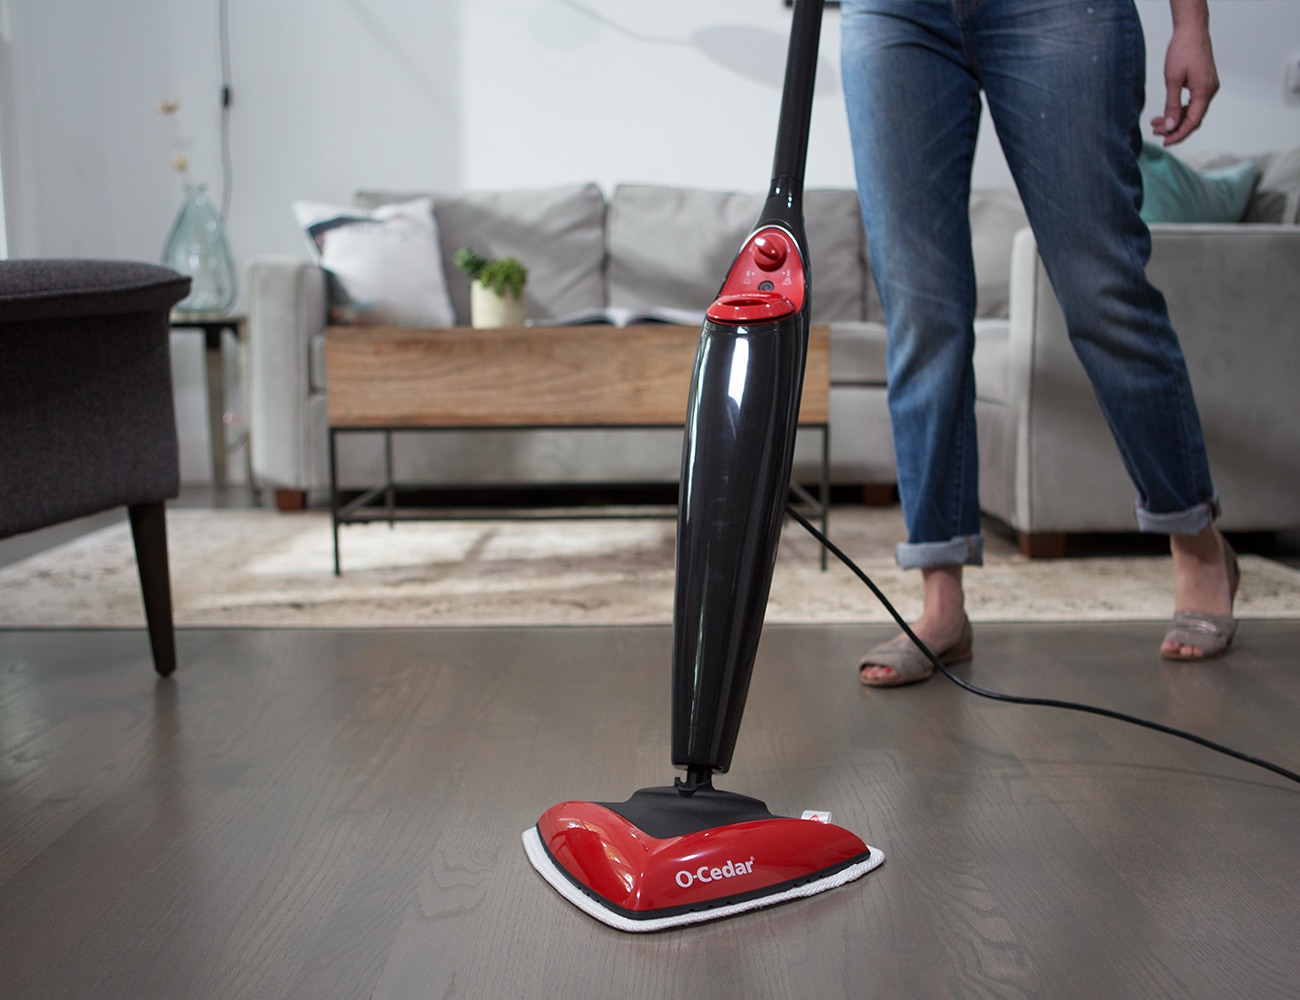 The O-Cedar Steam Mop Tackles Grime on Hard Floors and Carpet